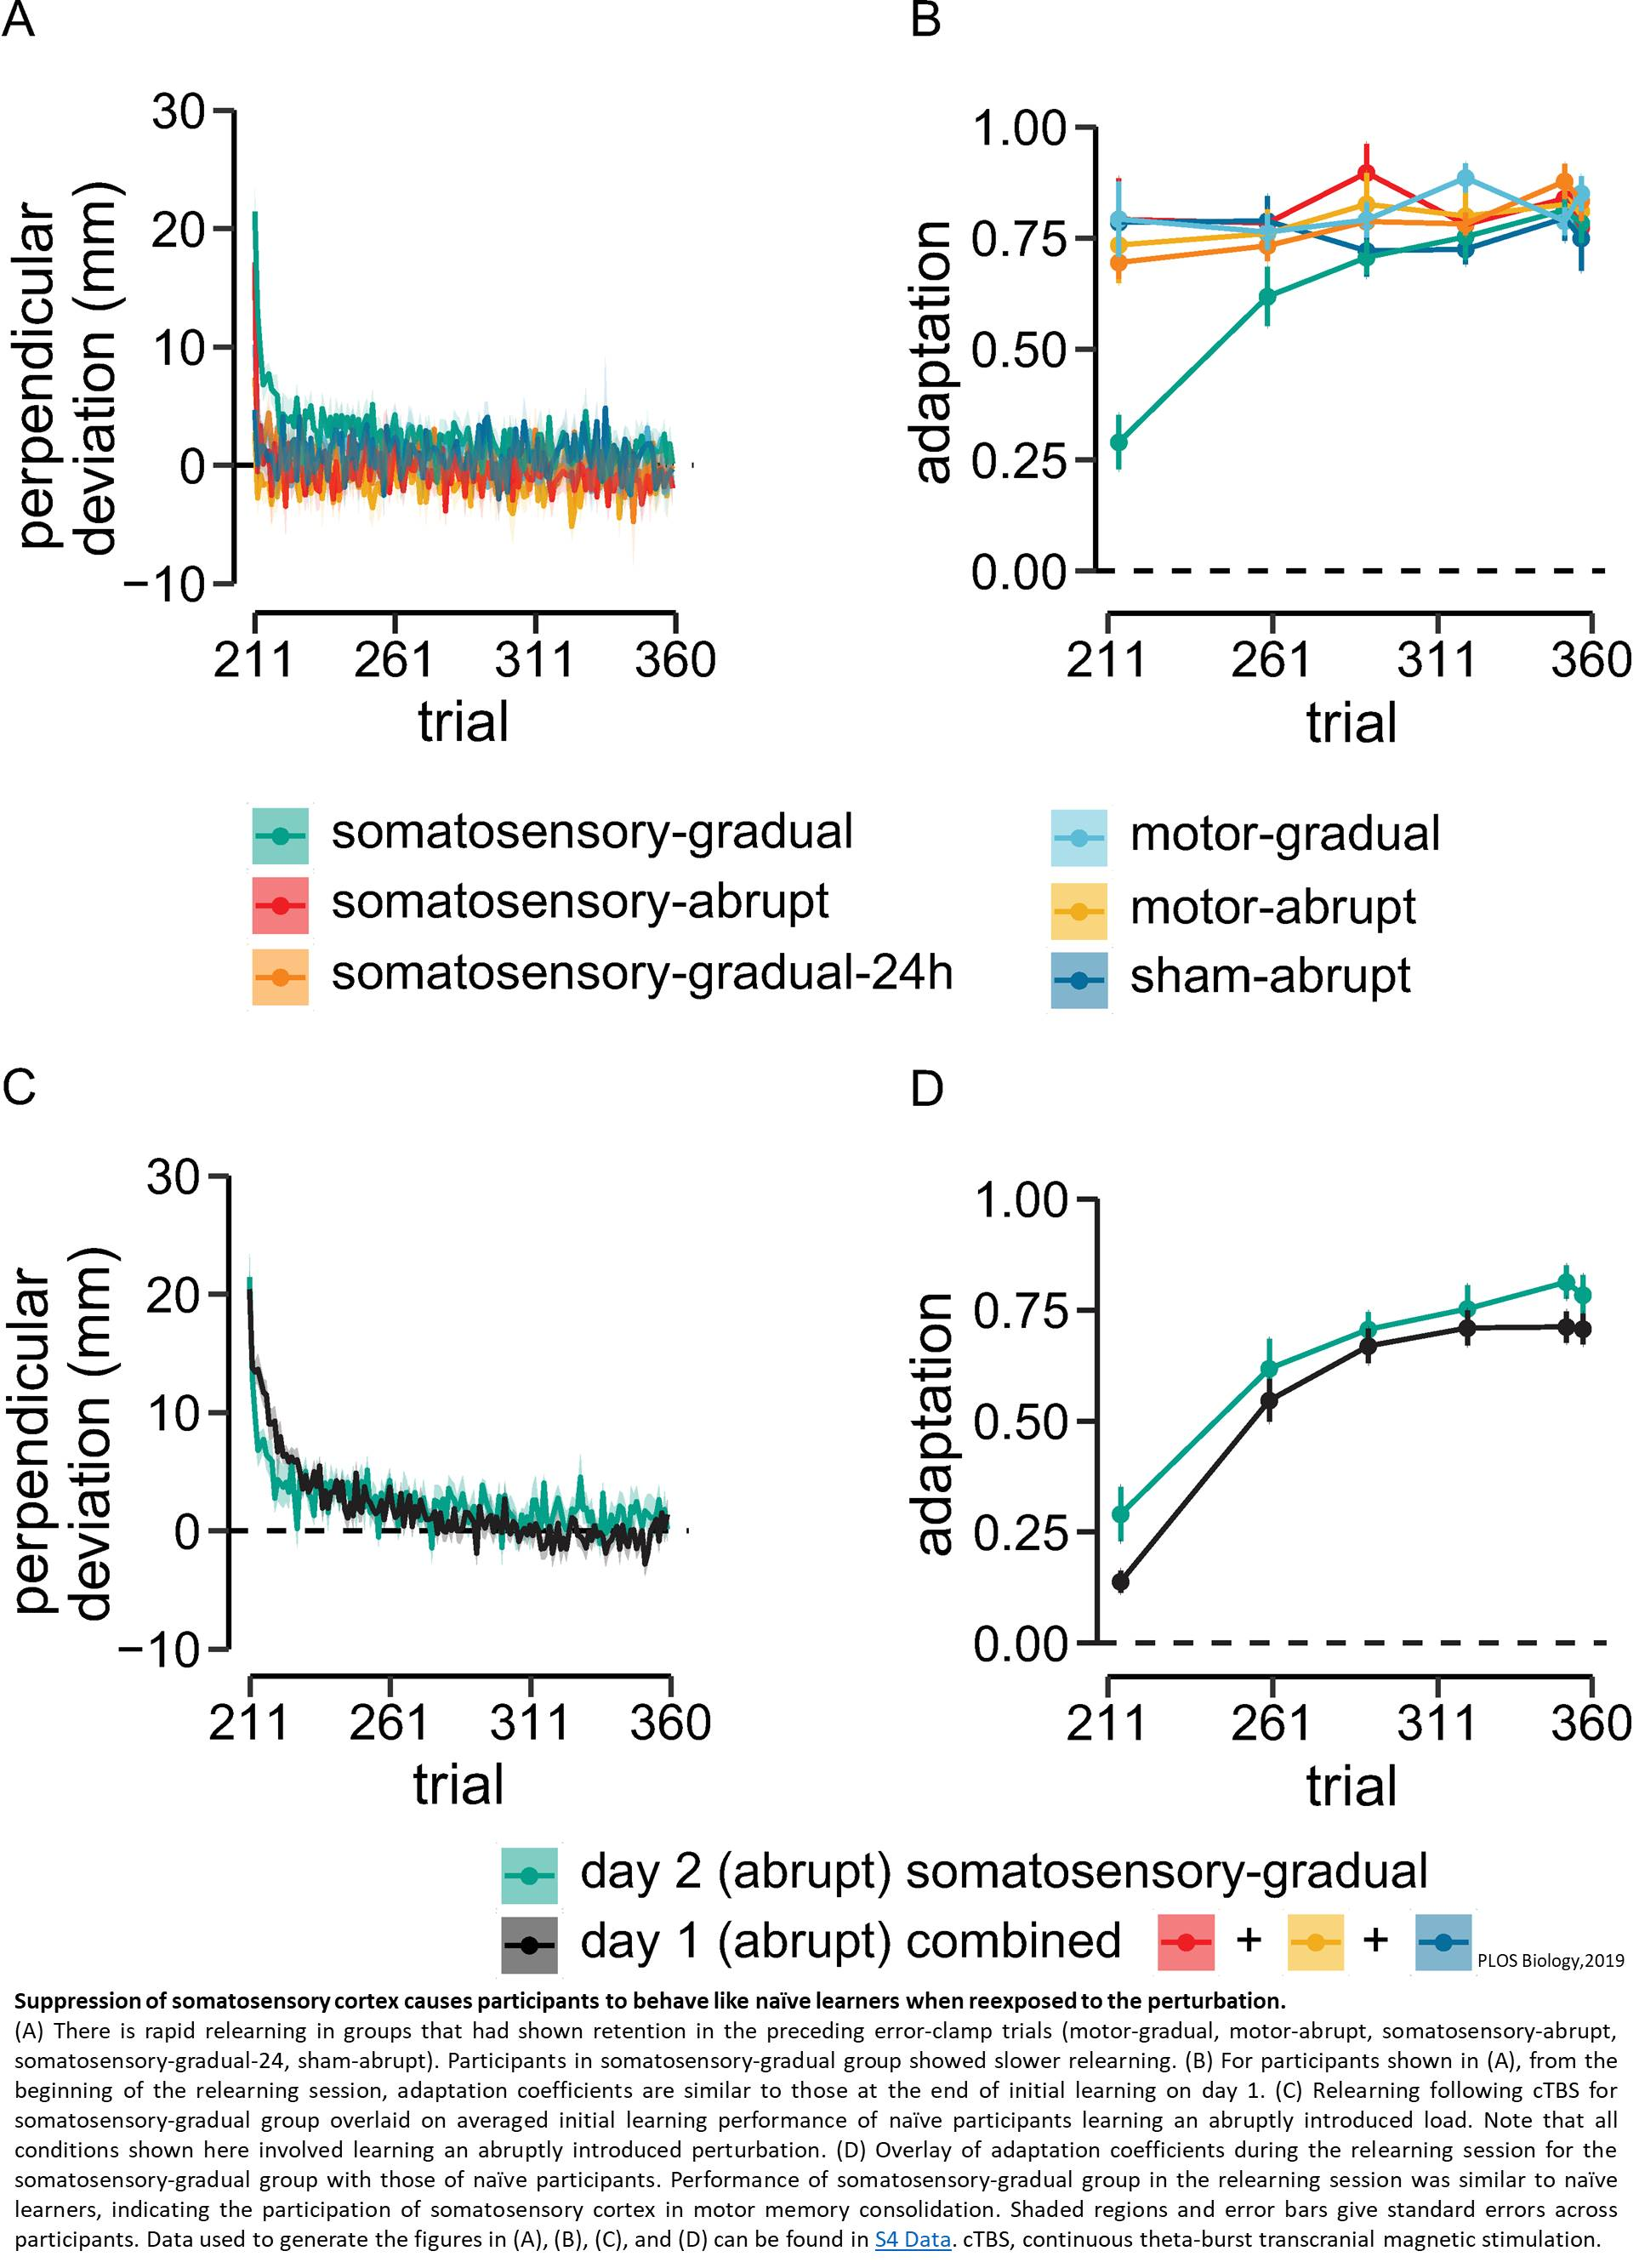 Somatosensory cortex is required for learning motor skills